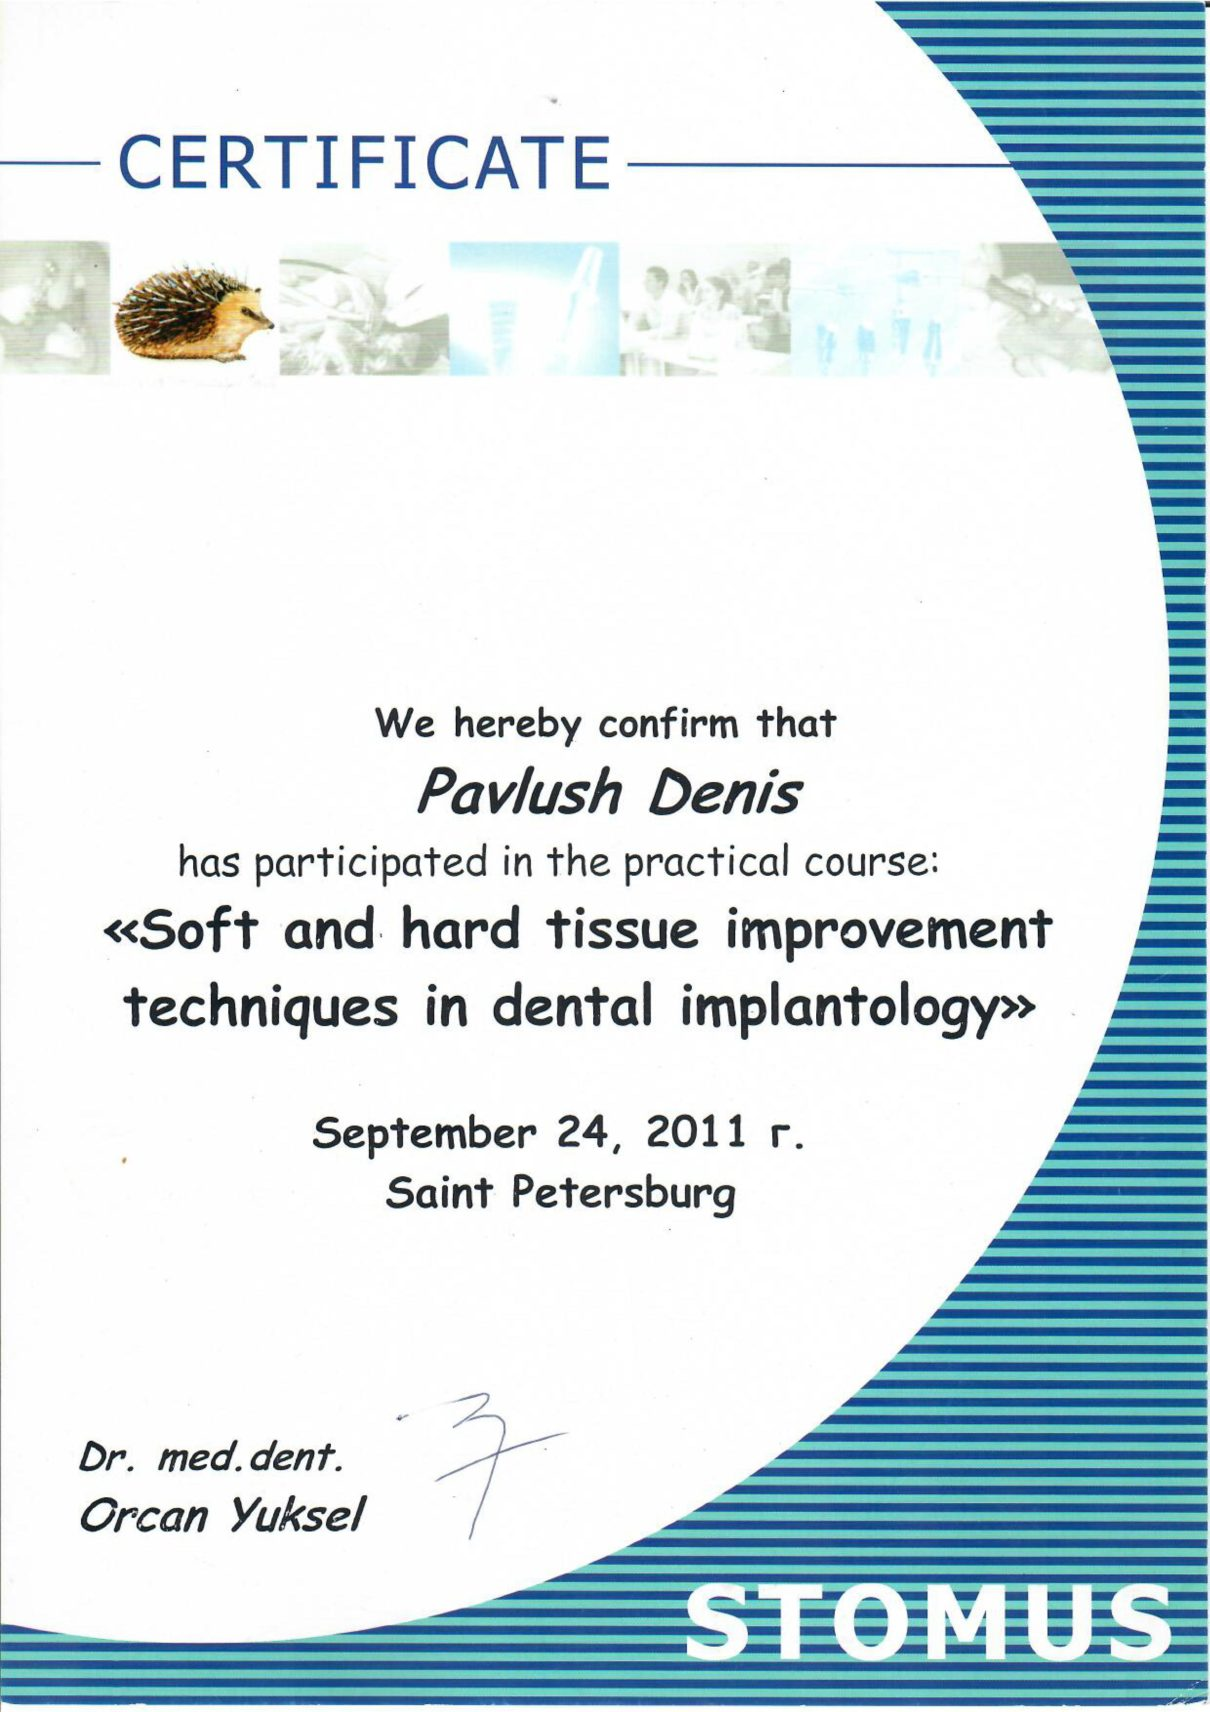 2011 Soft and hard tissue improvement techniques in dental implantology